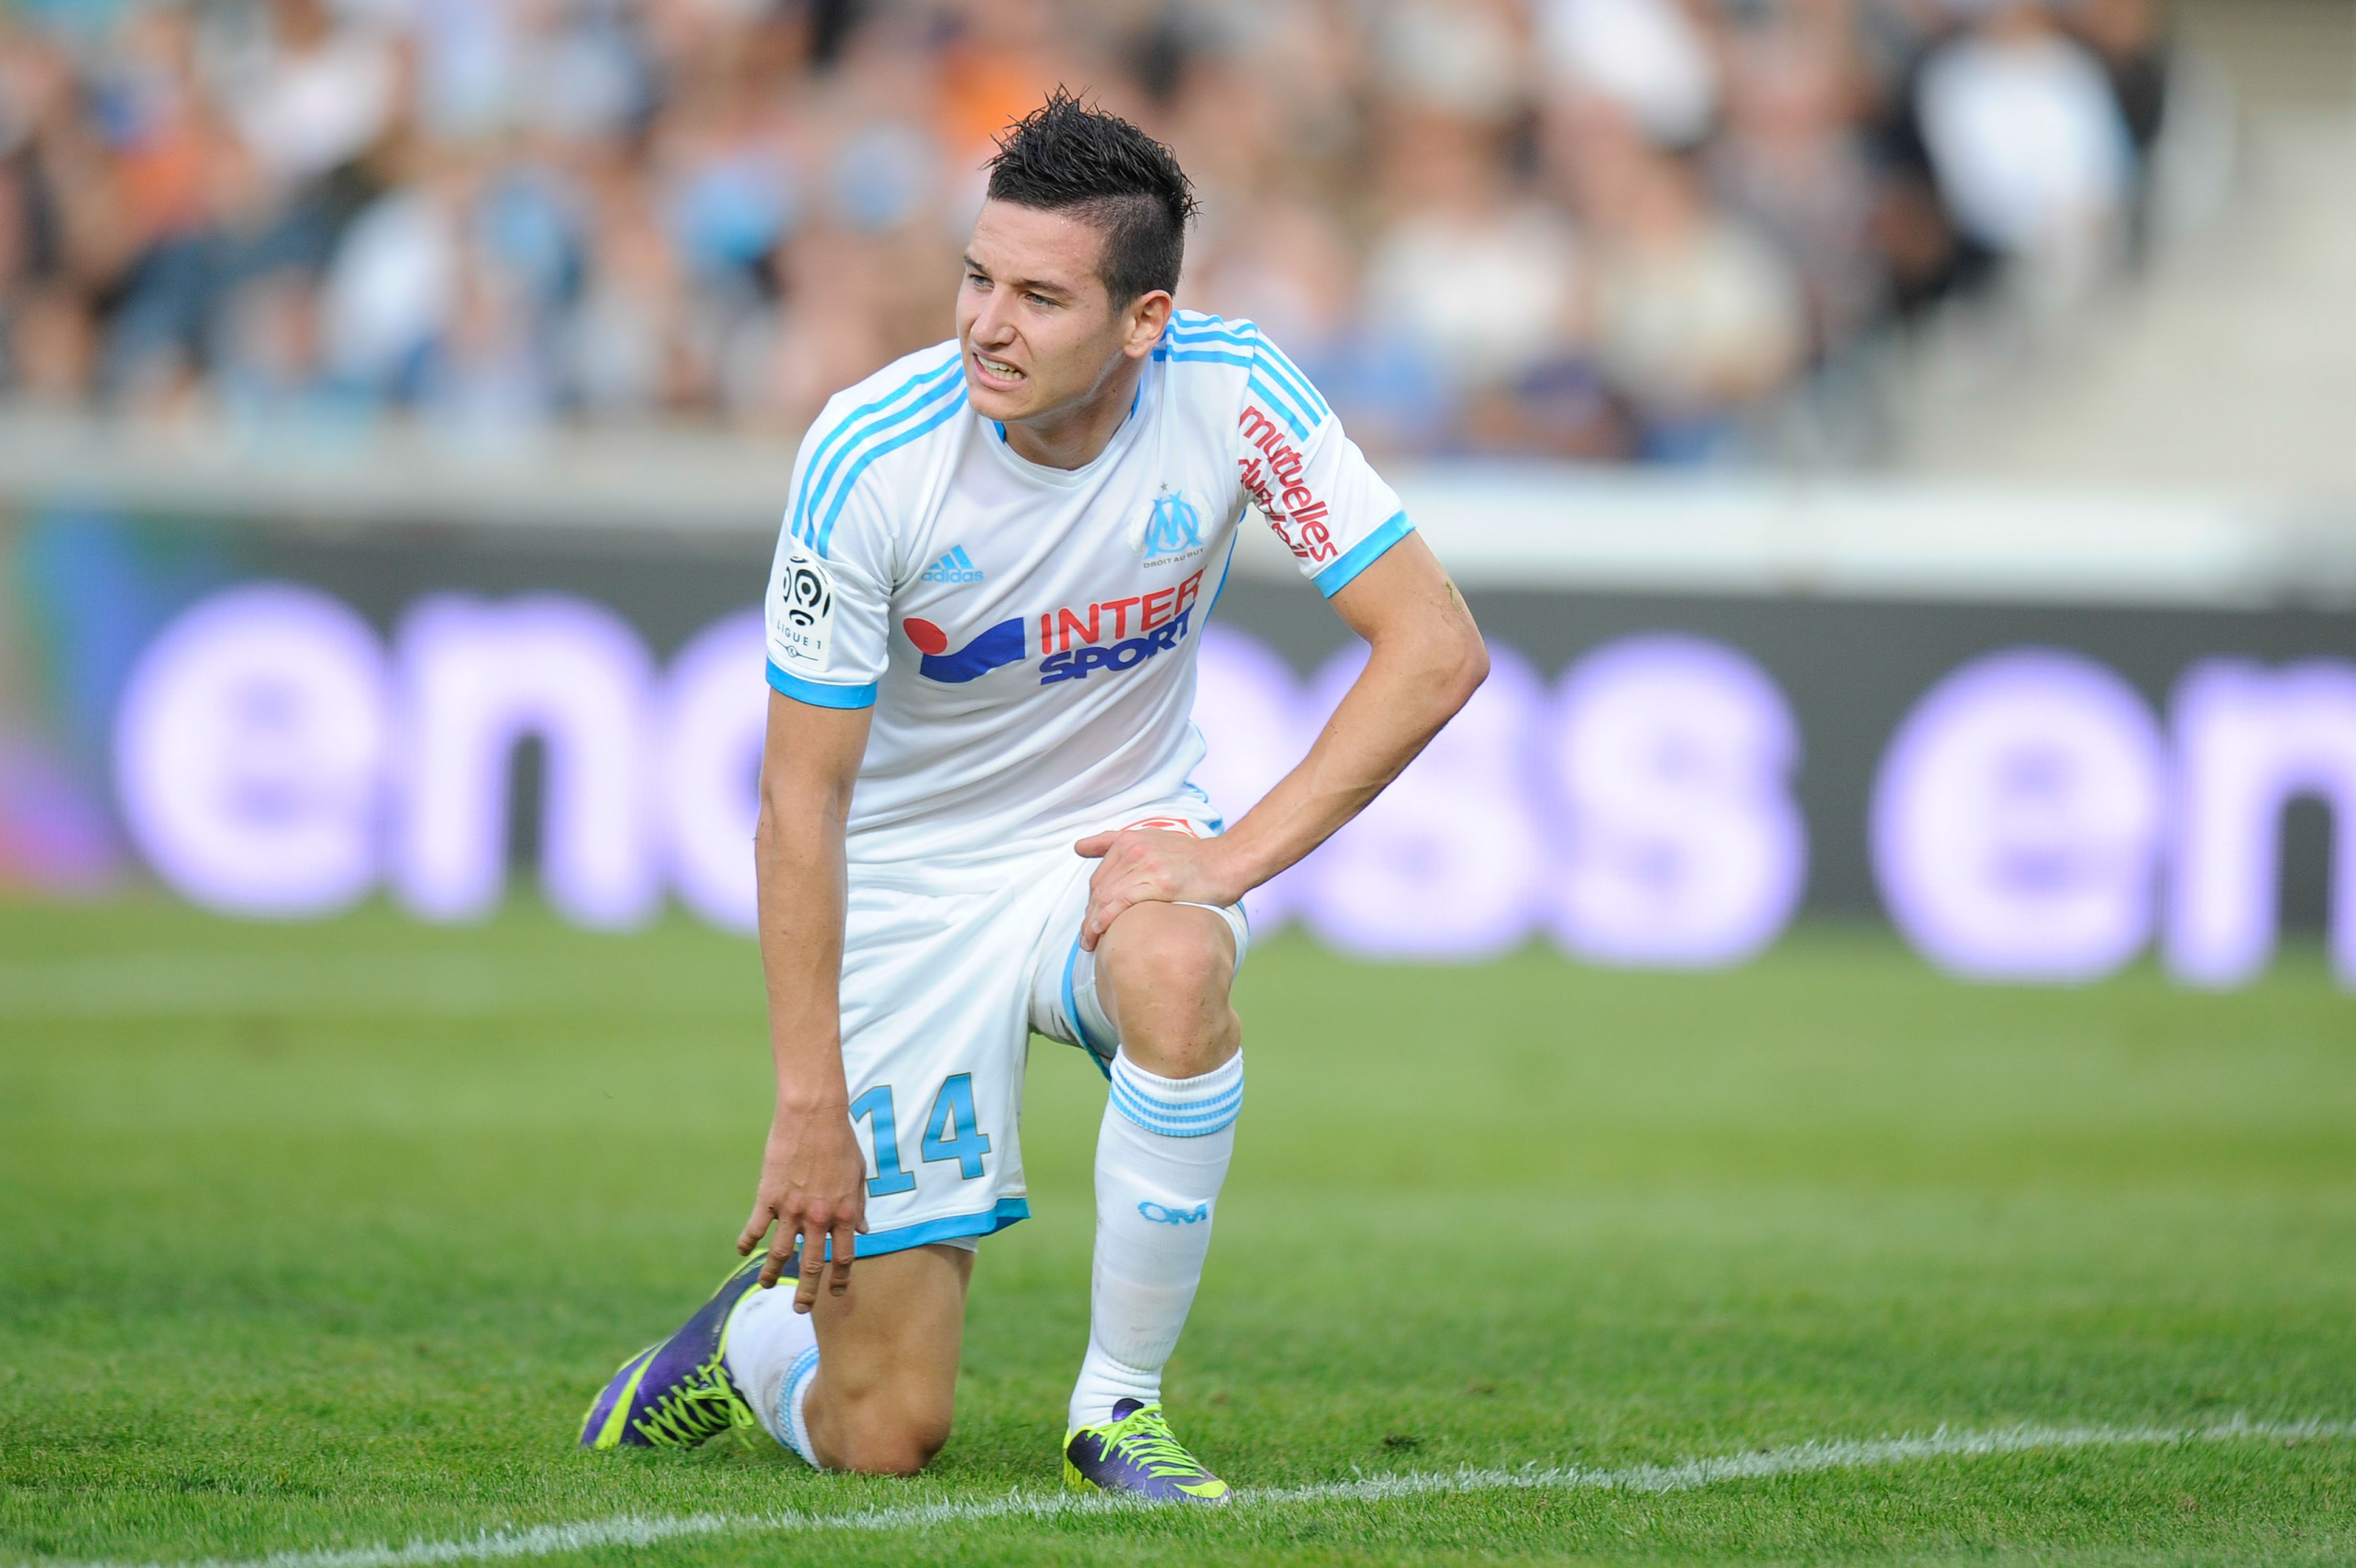 Deception de Florian THAUVIN - 26.10.2013 - Marseille / Reims - 11e journee de Ligue1 Photo: Amandine Noel / Icon Sport